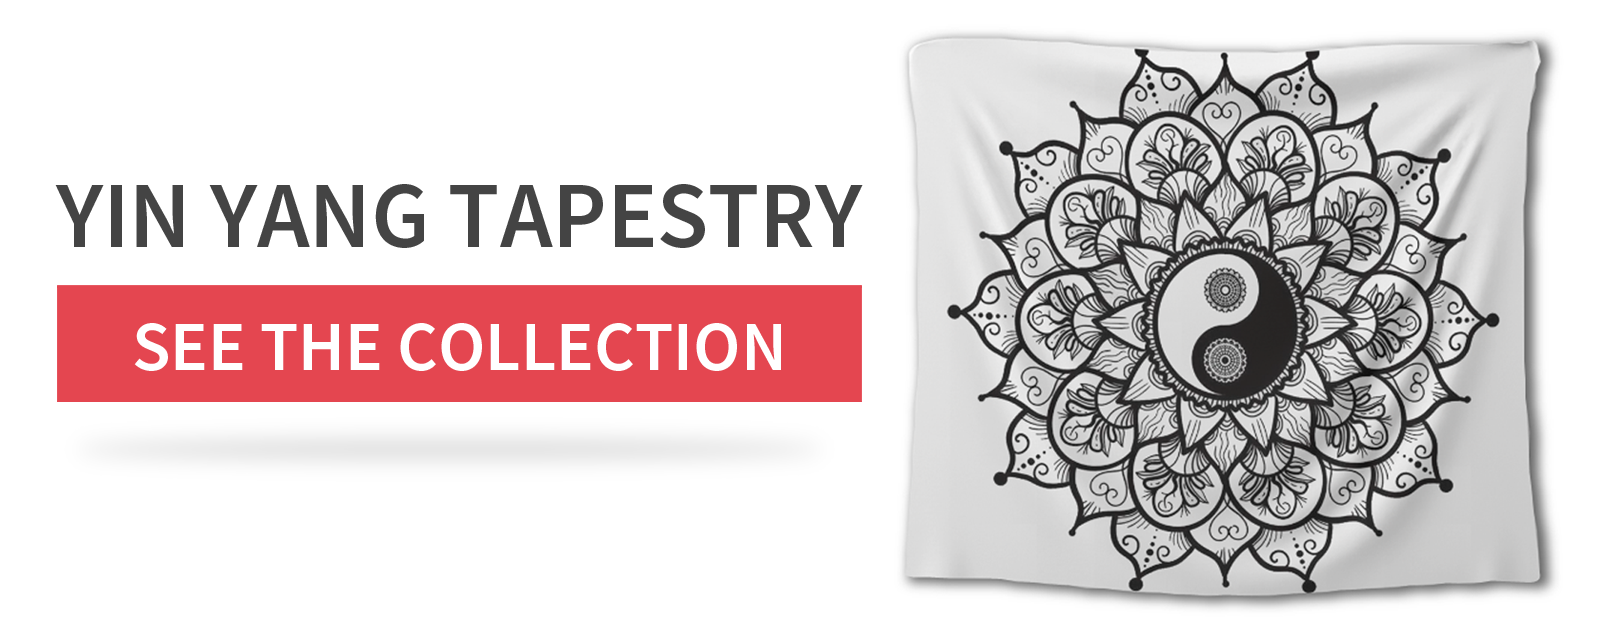 Yin Yang Tapestry Collection